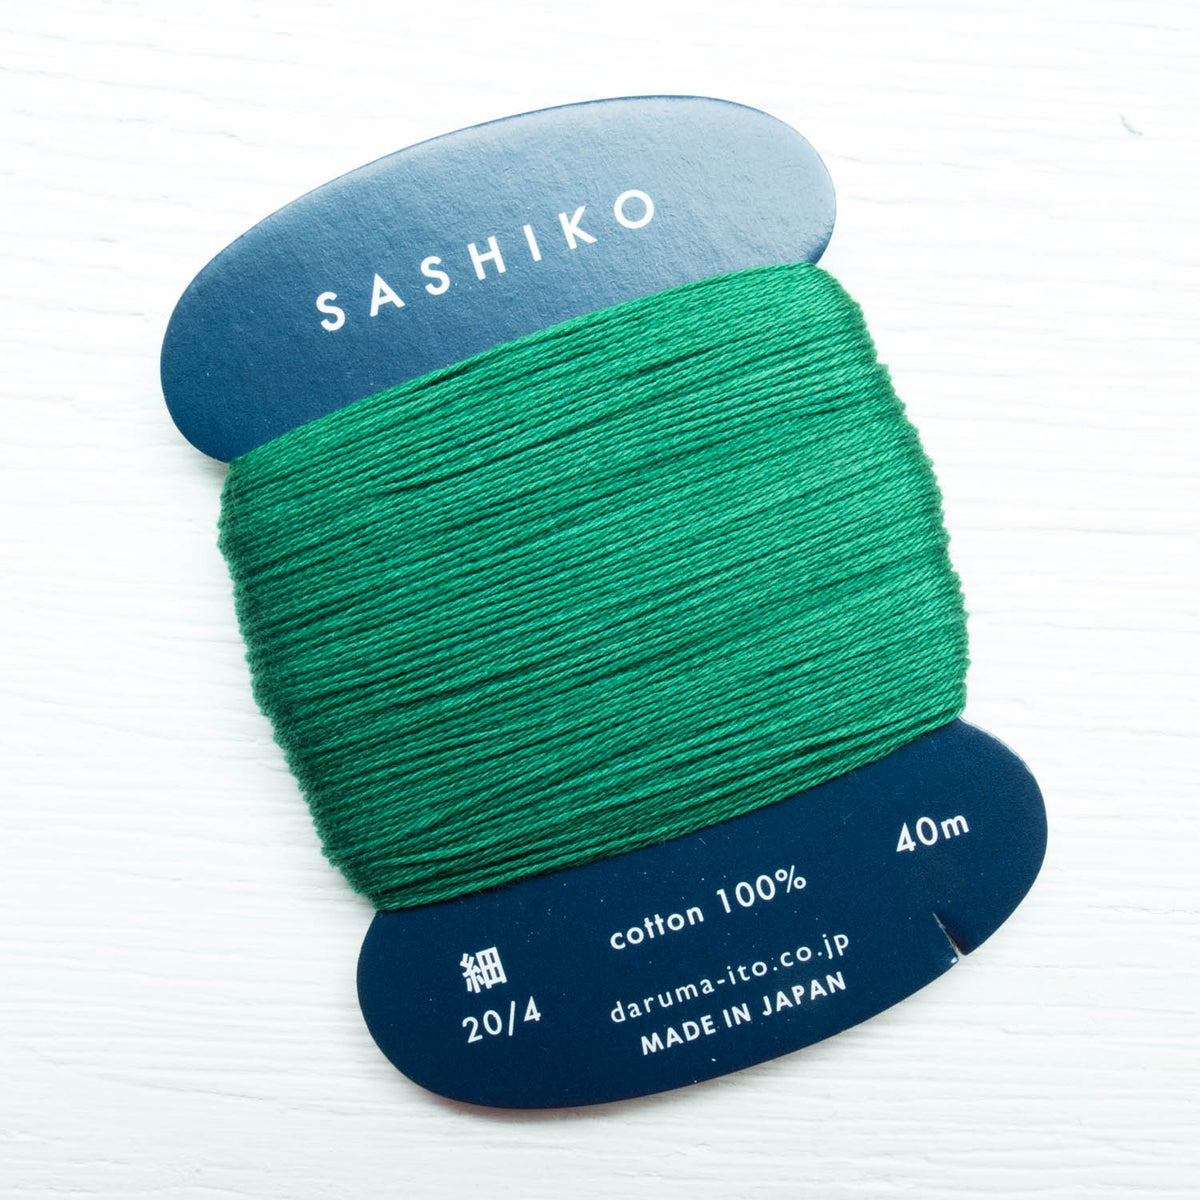 Daruma Carded Sashiko Thread - Hunter Green (no. 208) Sashiko - Snuggly Monkey